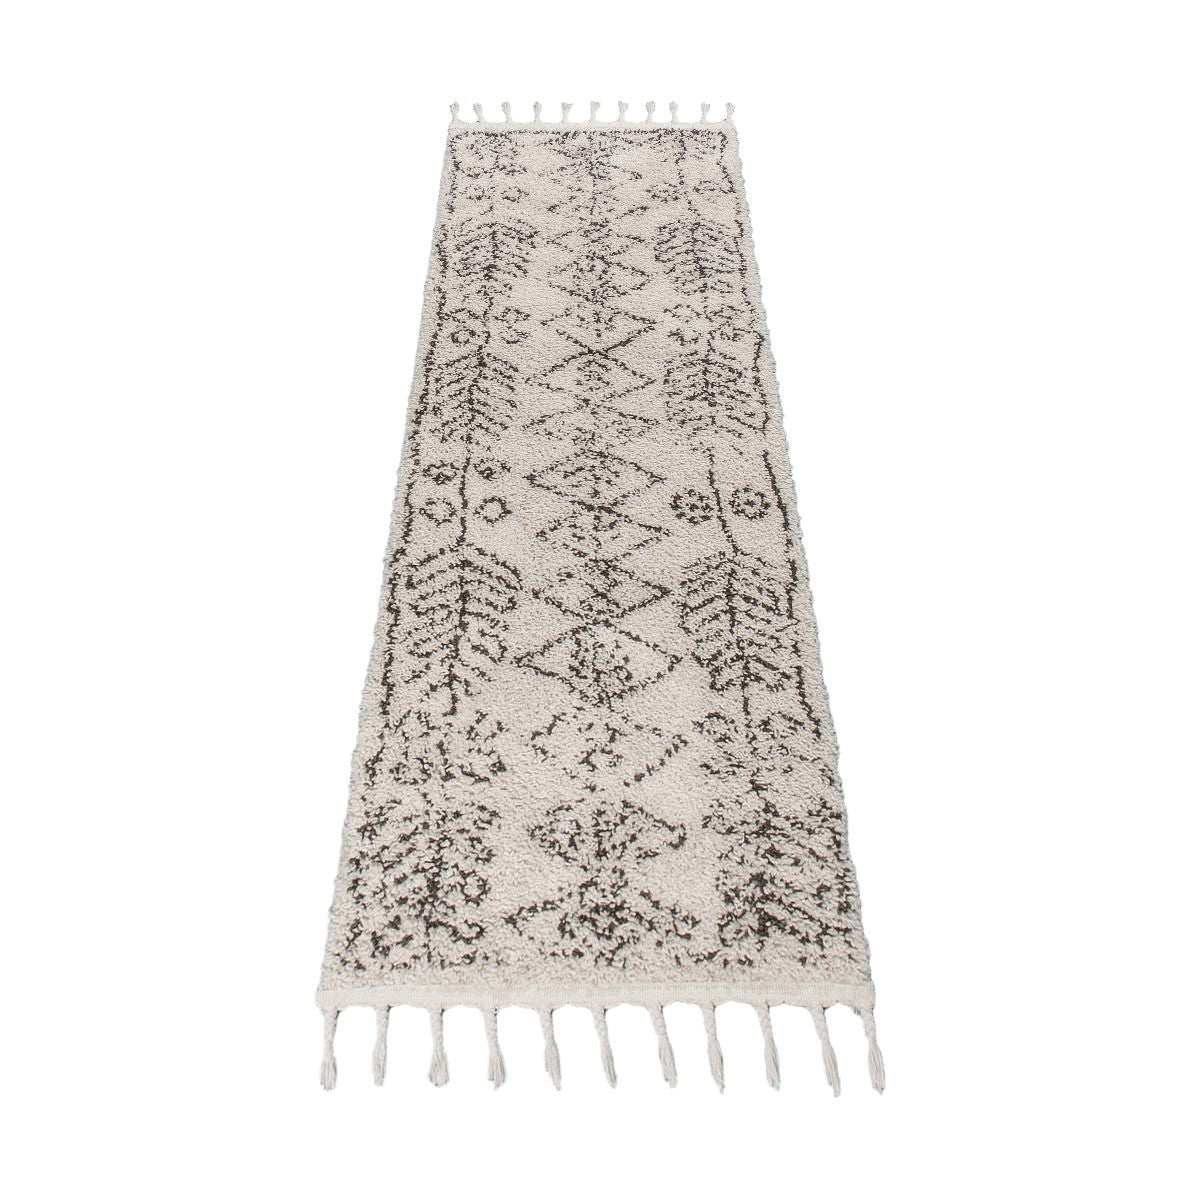 Shaggy Marrakech Rug 01 Cream/Black Runner 3